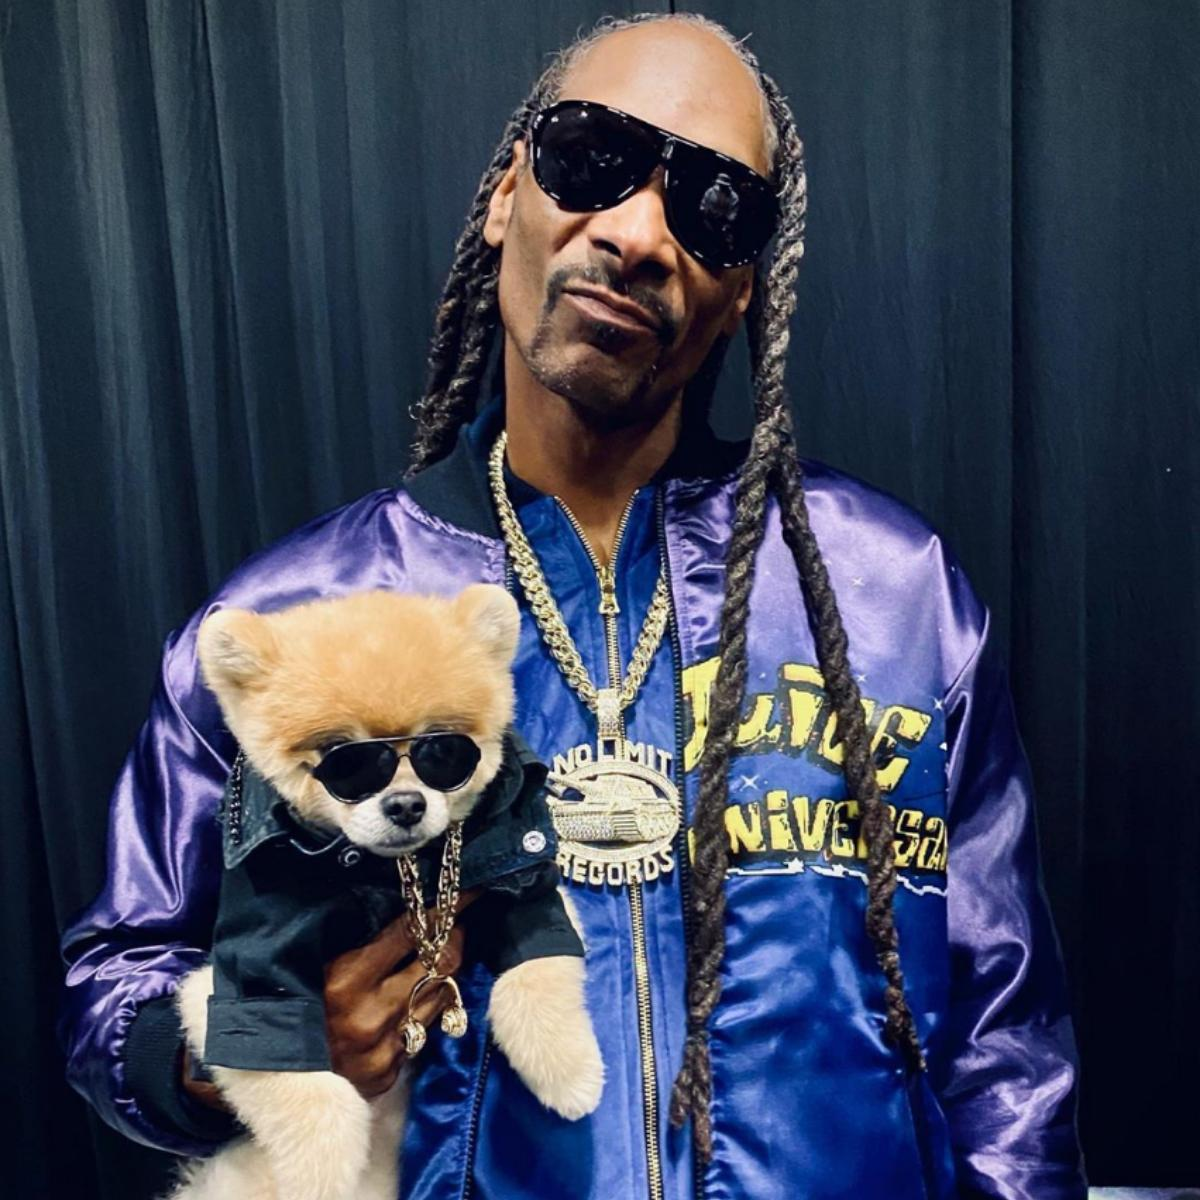 Snoop Dogg Lullaby Album For Kids